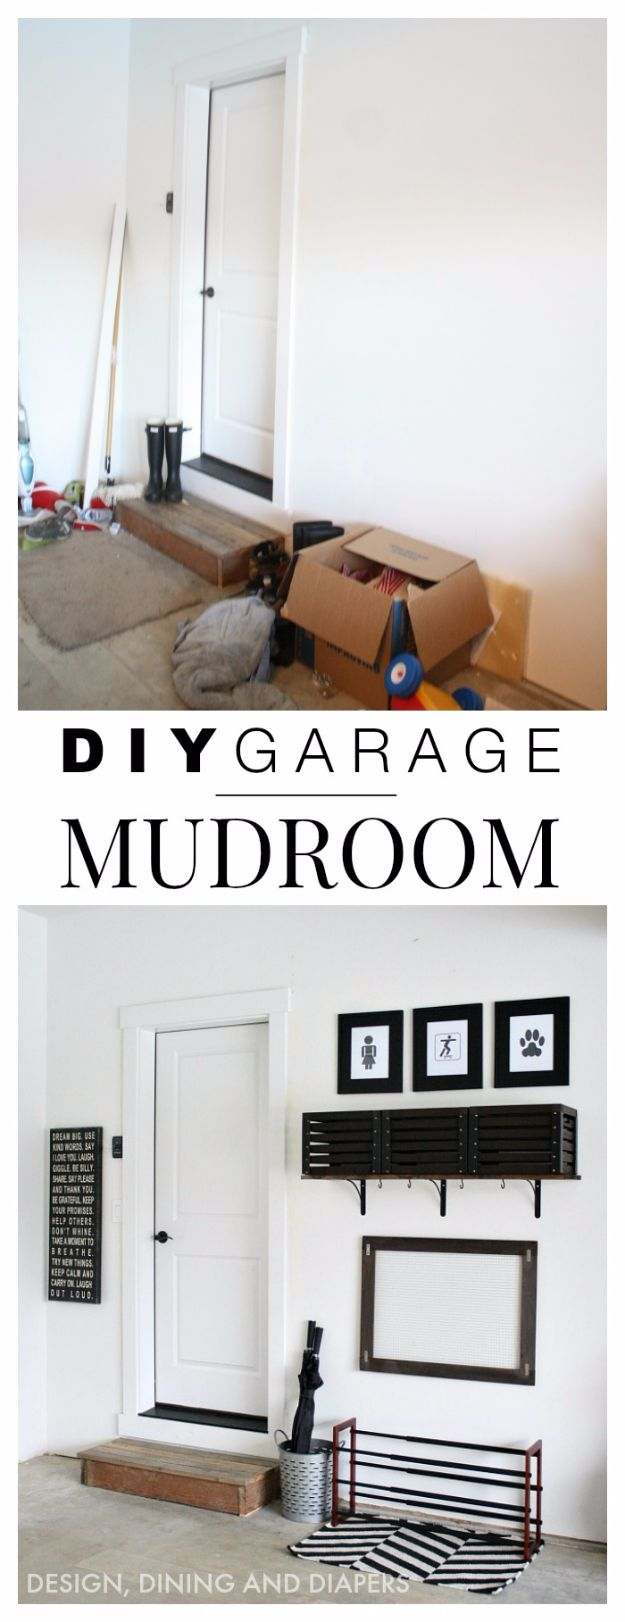 DIY Projects Your Garage Needs - DIY Simple Garage Mudroom - Do It Yourself Garage Makeover Ideas Include Storage, Mudroom, Organization, Shelves, and Project Plans for Cool New Garage Decor - Easy Home Decor on A Budget http://diyjoy.com/diy-garage-ideas